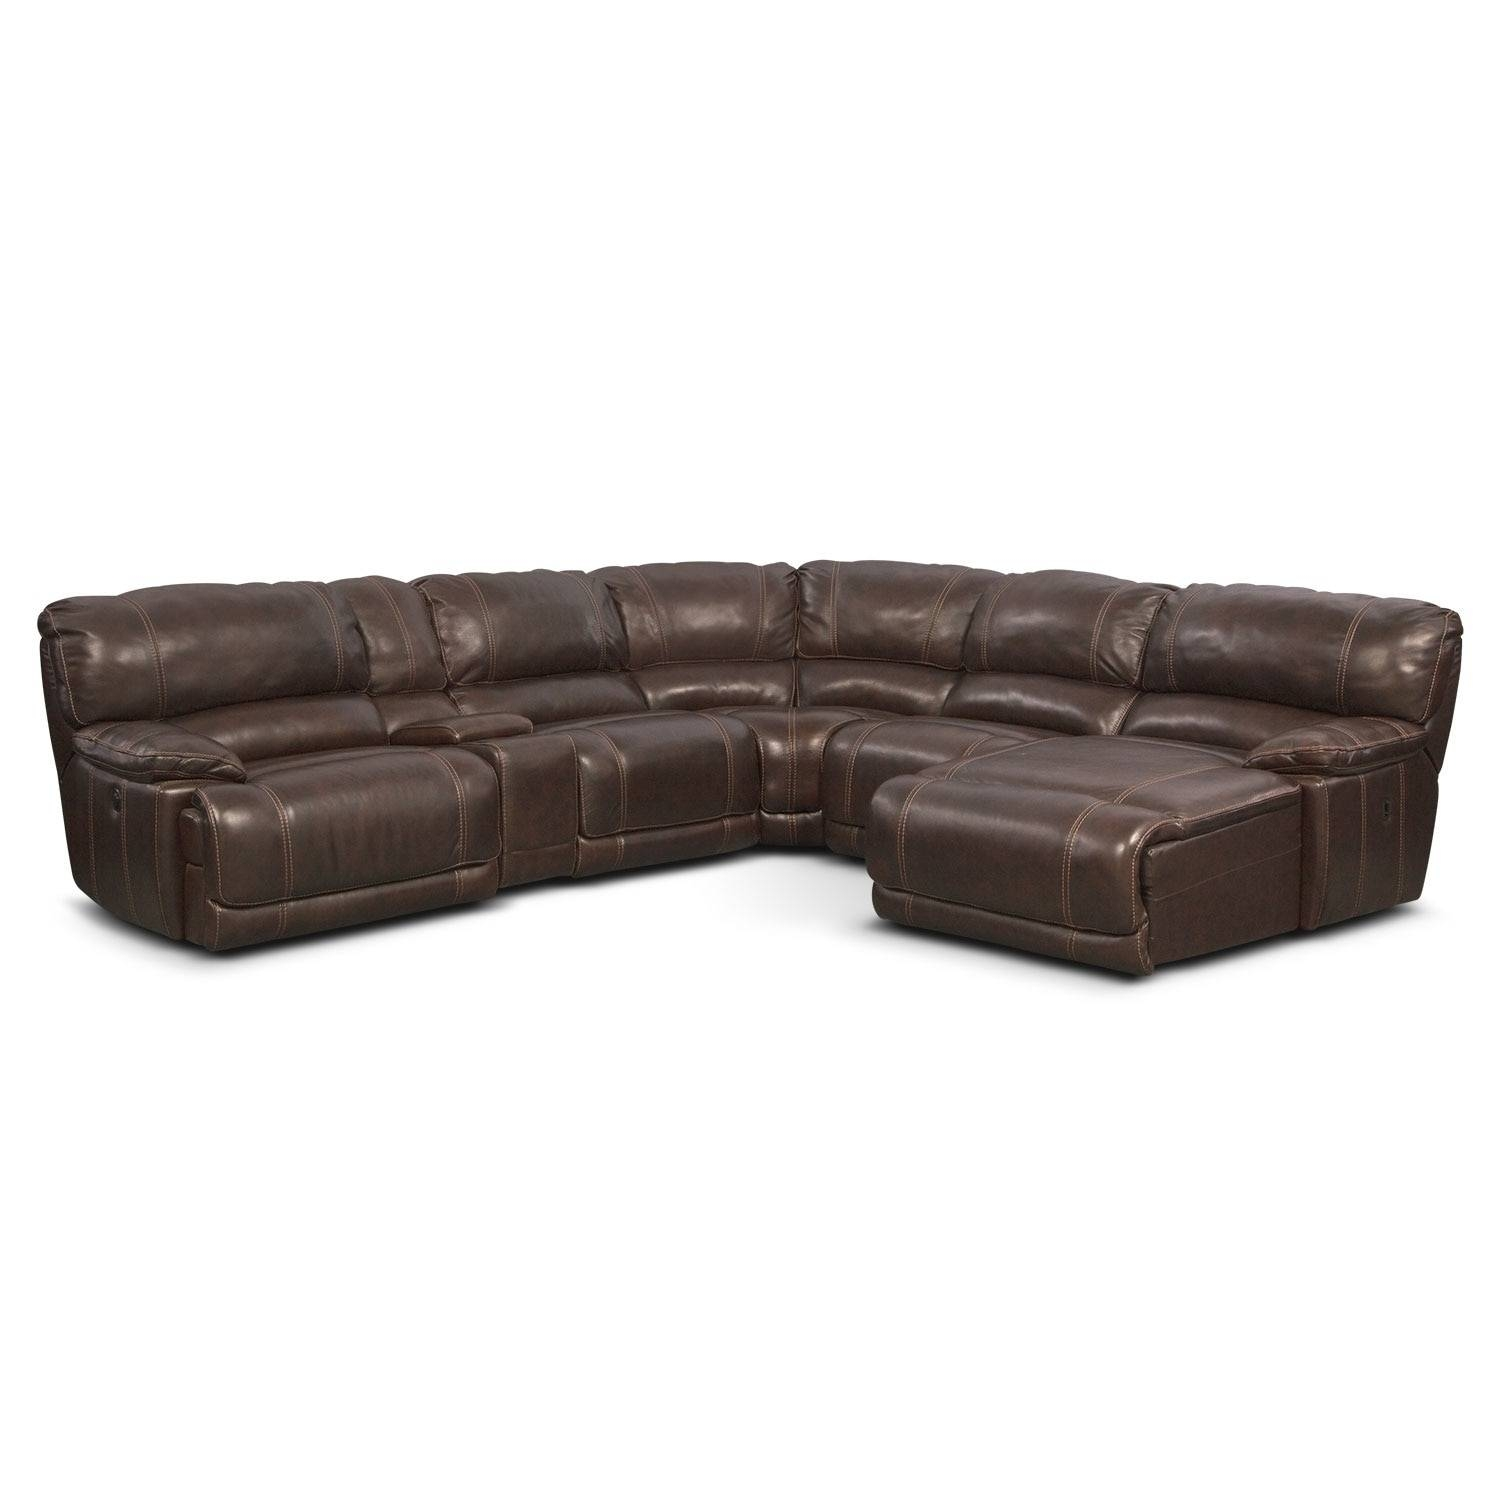 St. Malo 6-Piece Power Reclining Sectional With Left-Facing Chaise in 6 Piece Sectional Sofas Couches (Image 15 of 15)